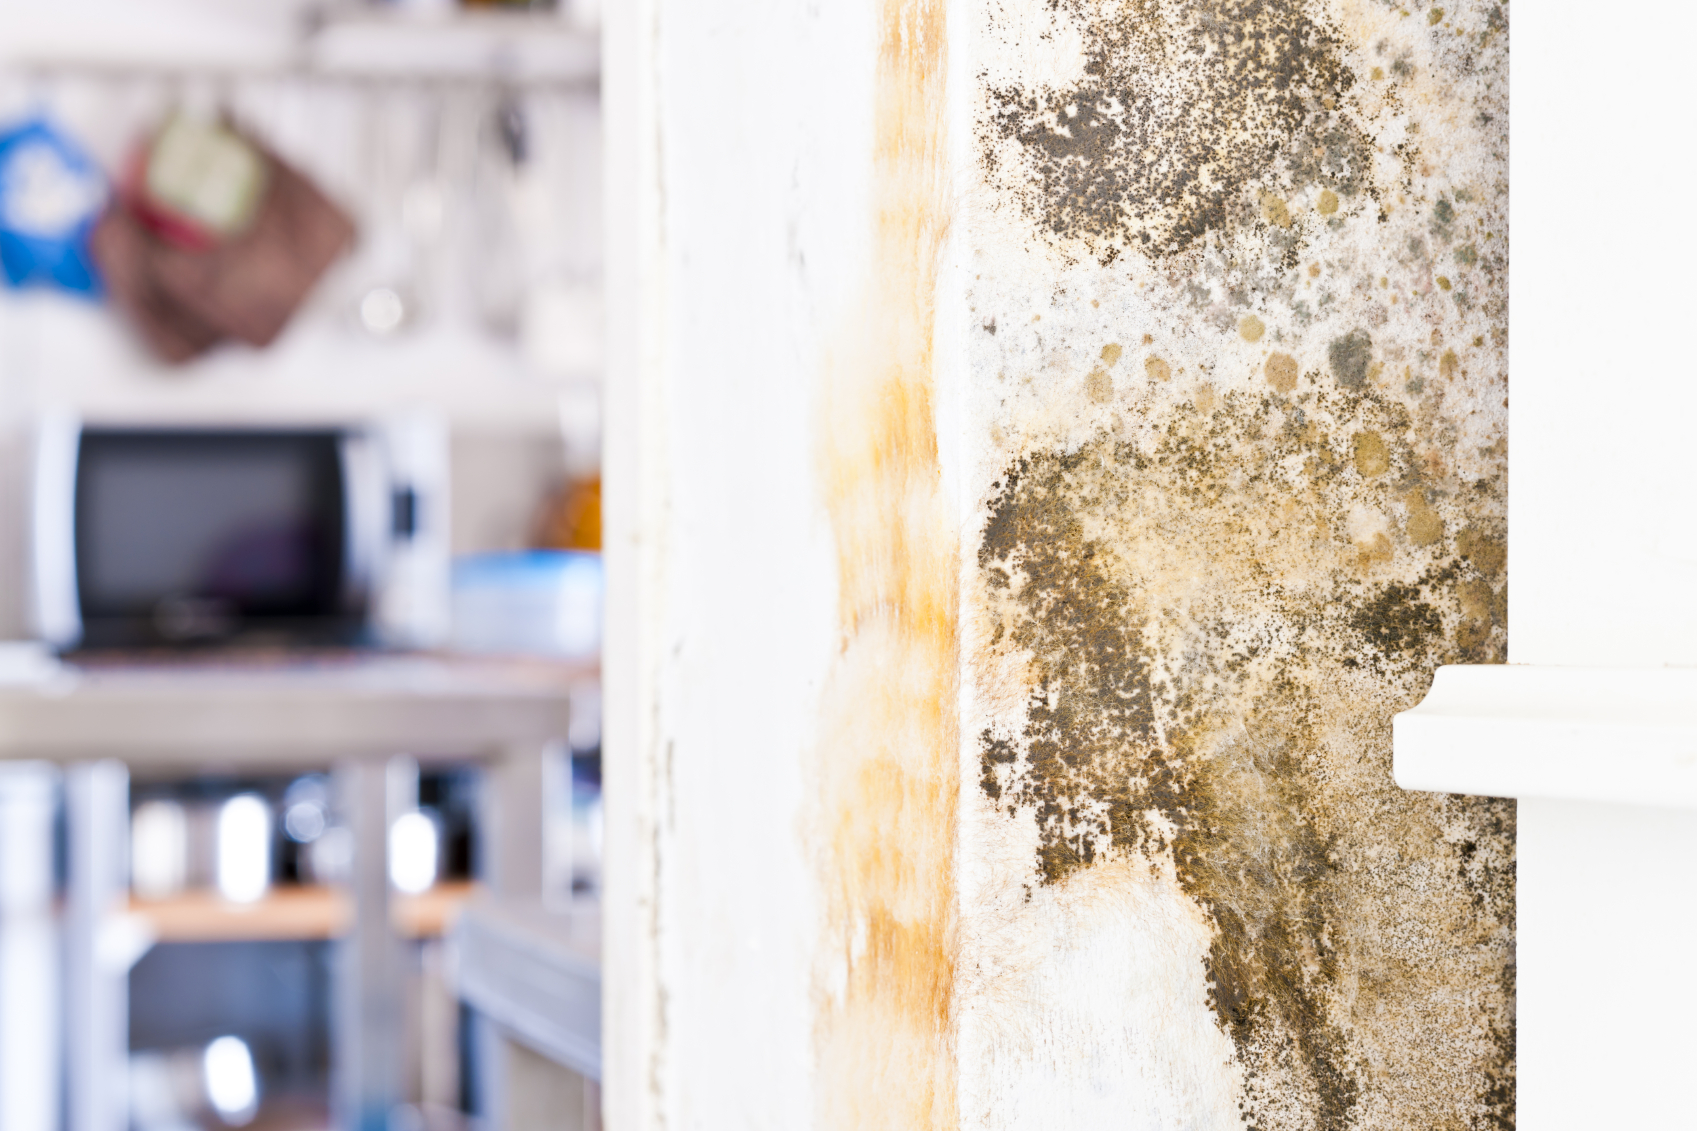 Mold on the wallpaper - why it occurs and how to get rid